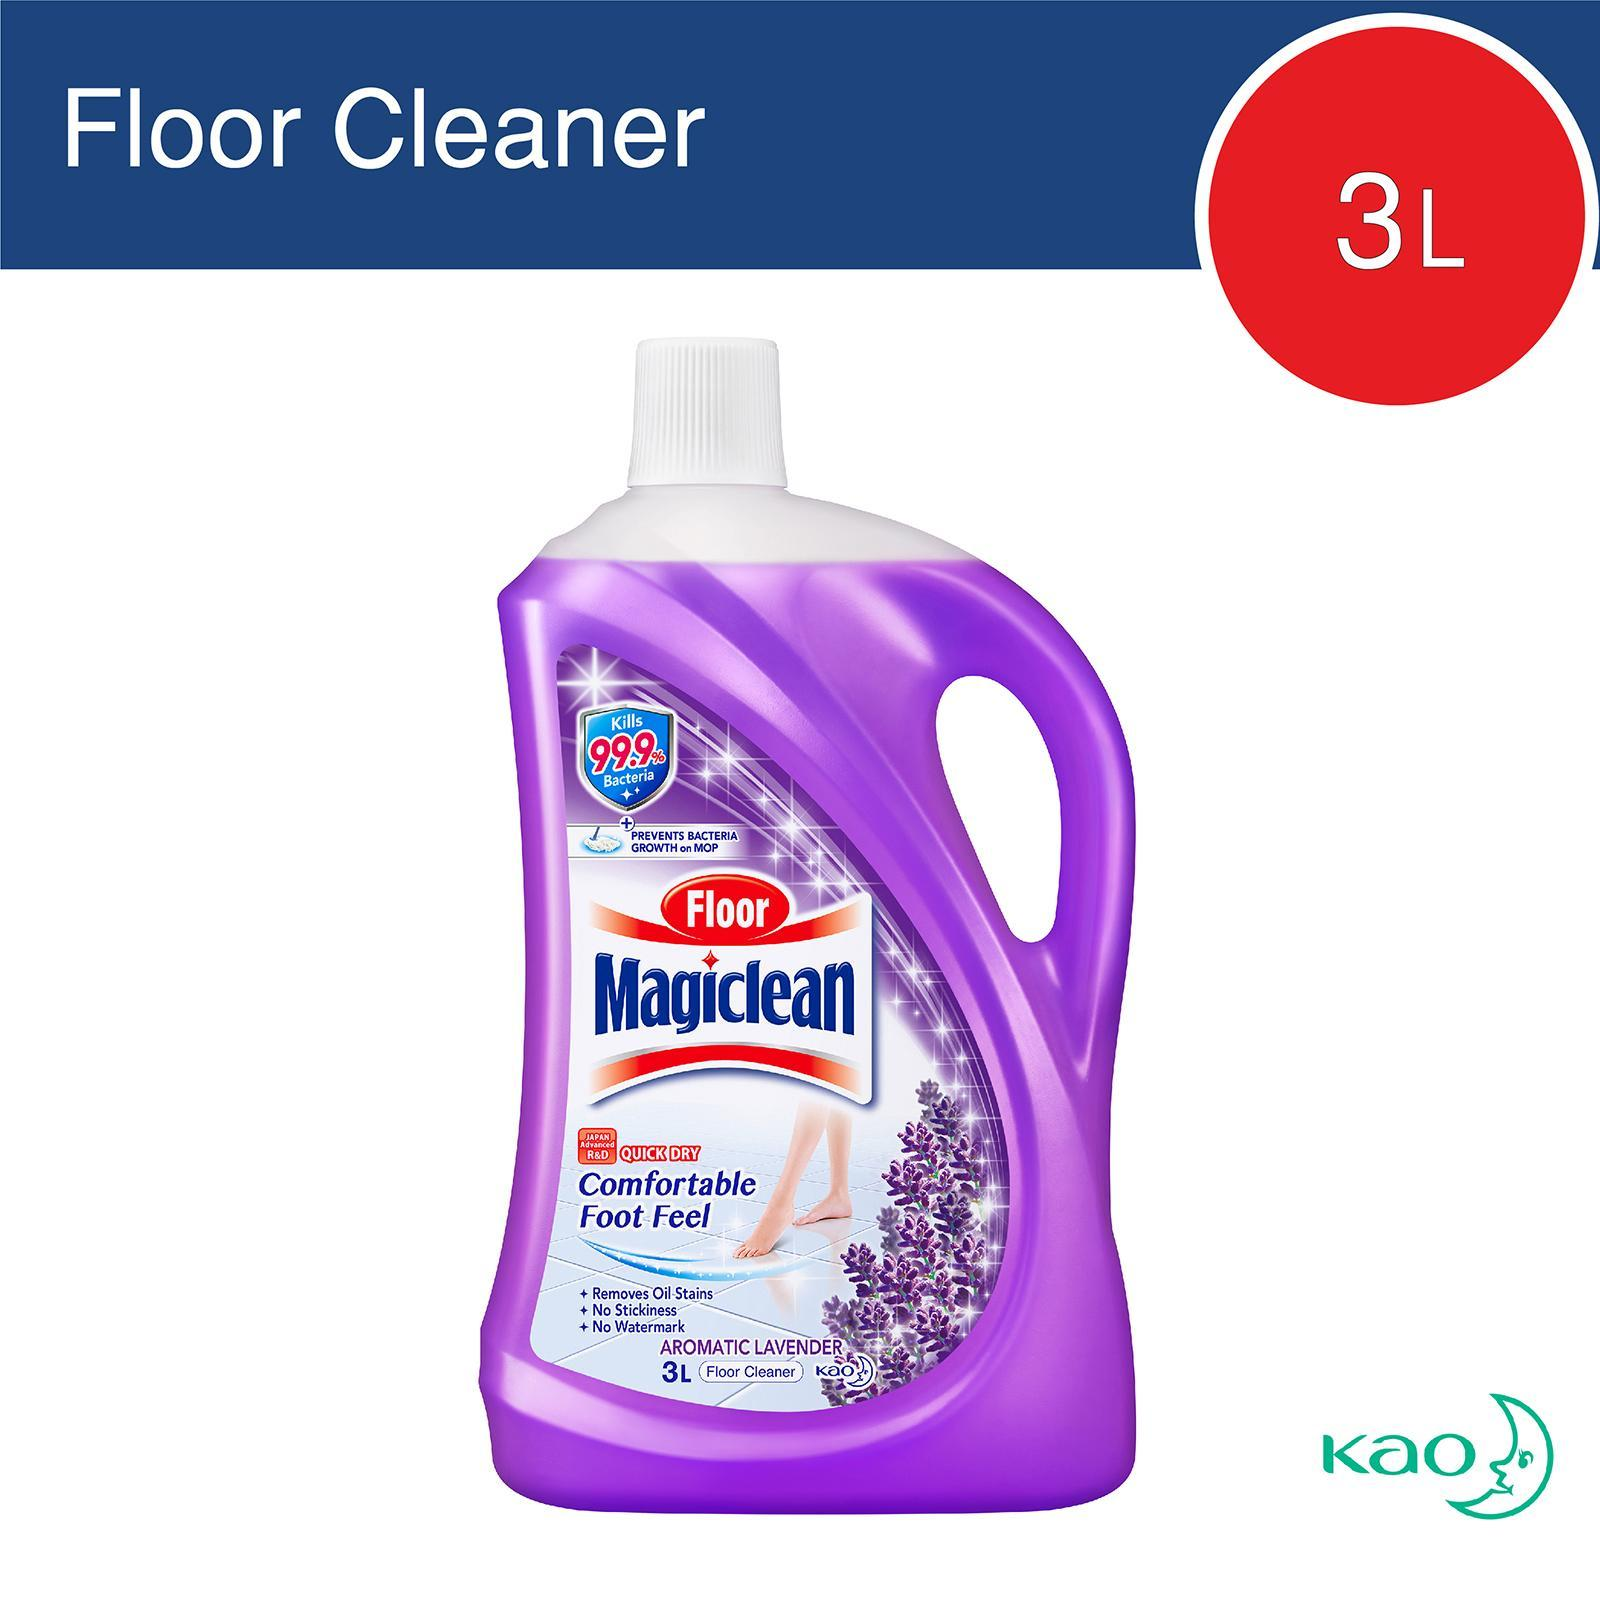 Magiclean Aromatic Lavender Floor Cleaner By Redmart.